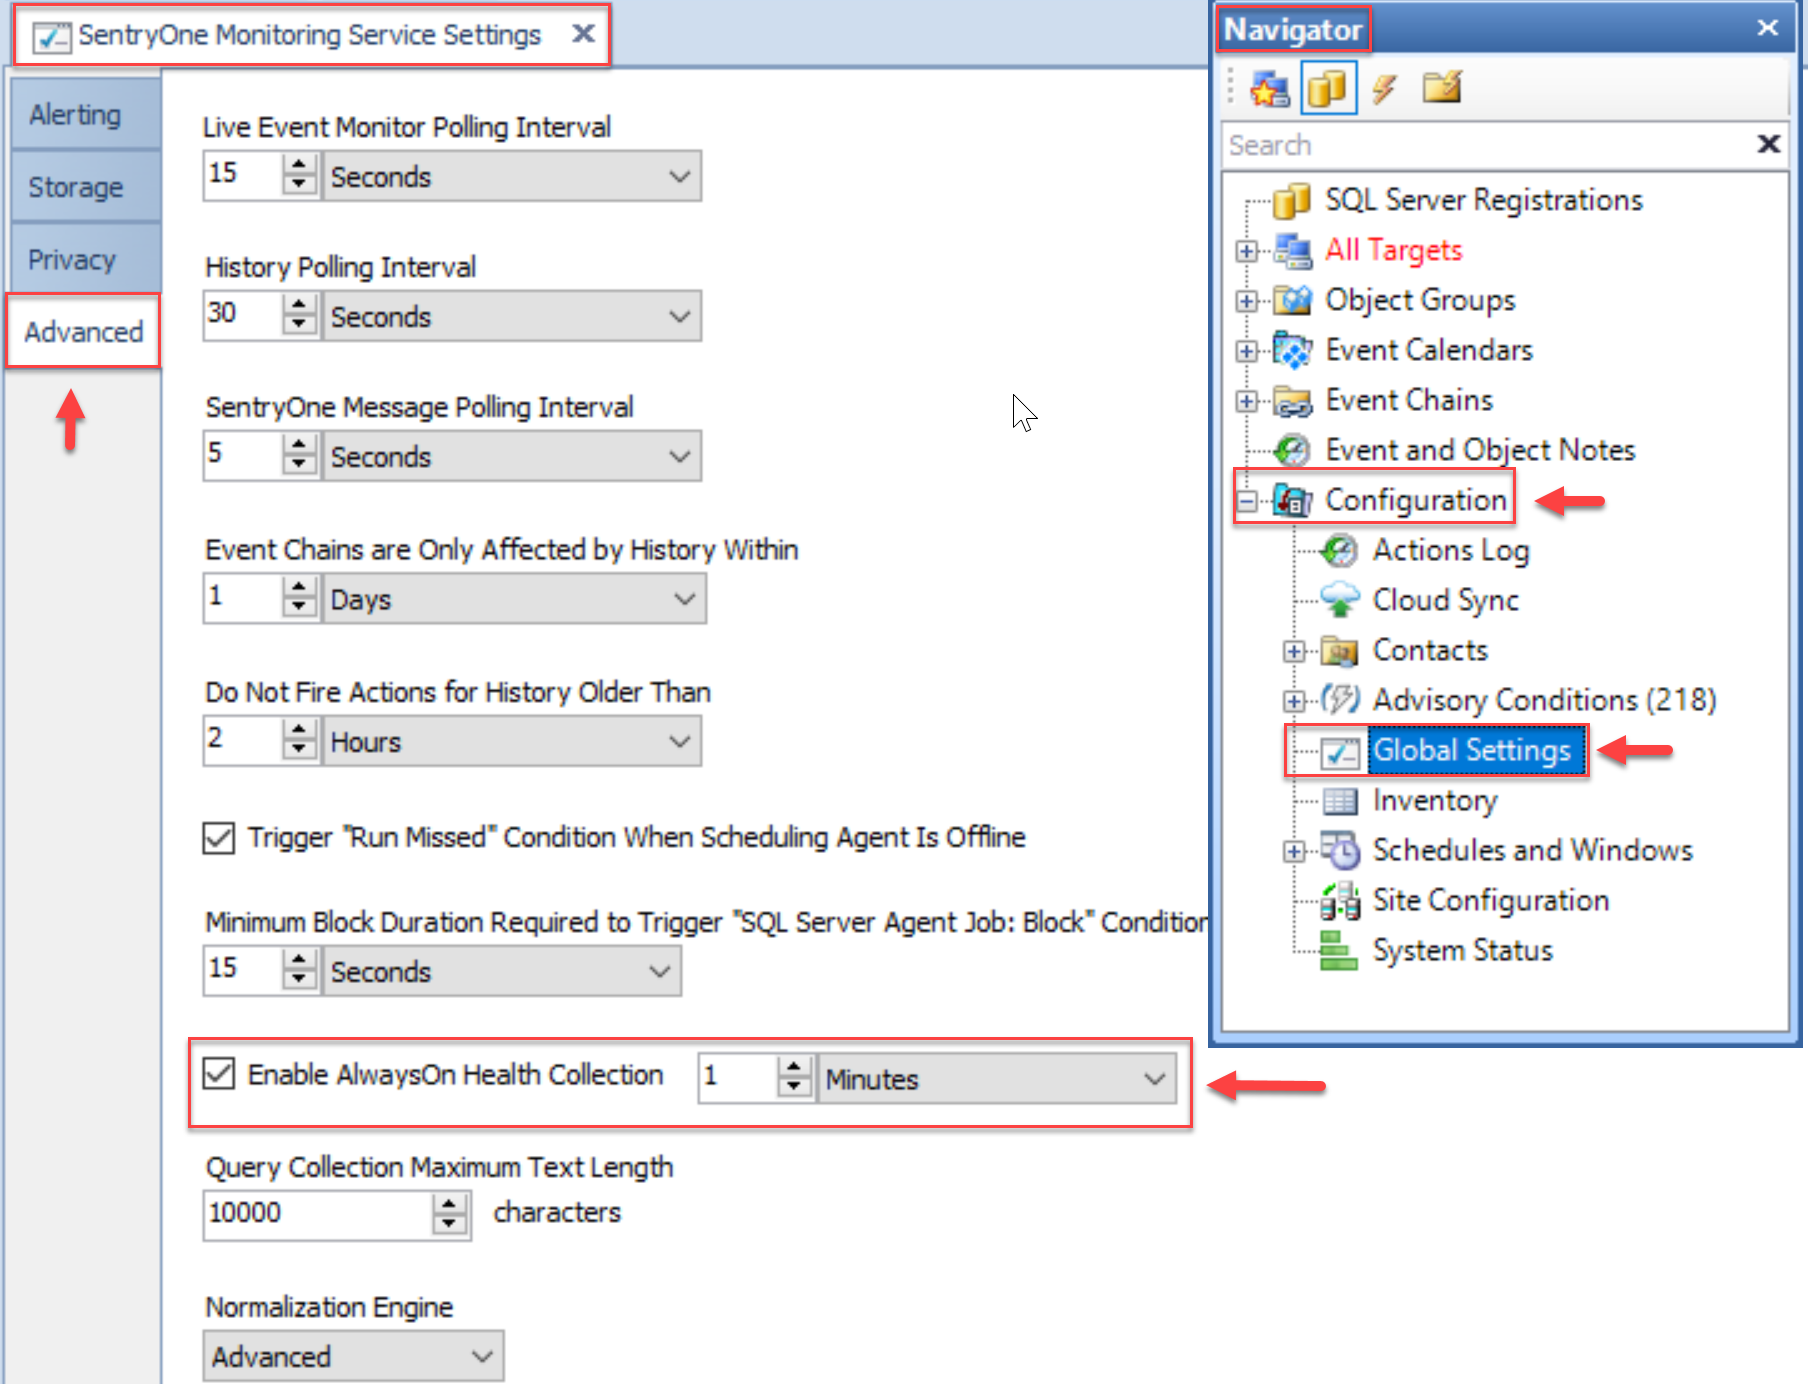 SentryOne Monitoring Service Settings Advanced tab Enable AlwaysOn Health Collection setting